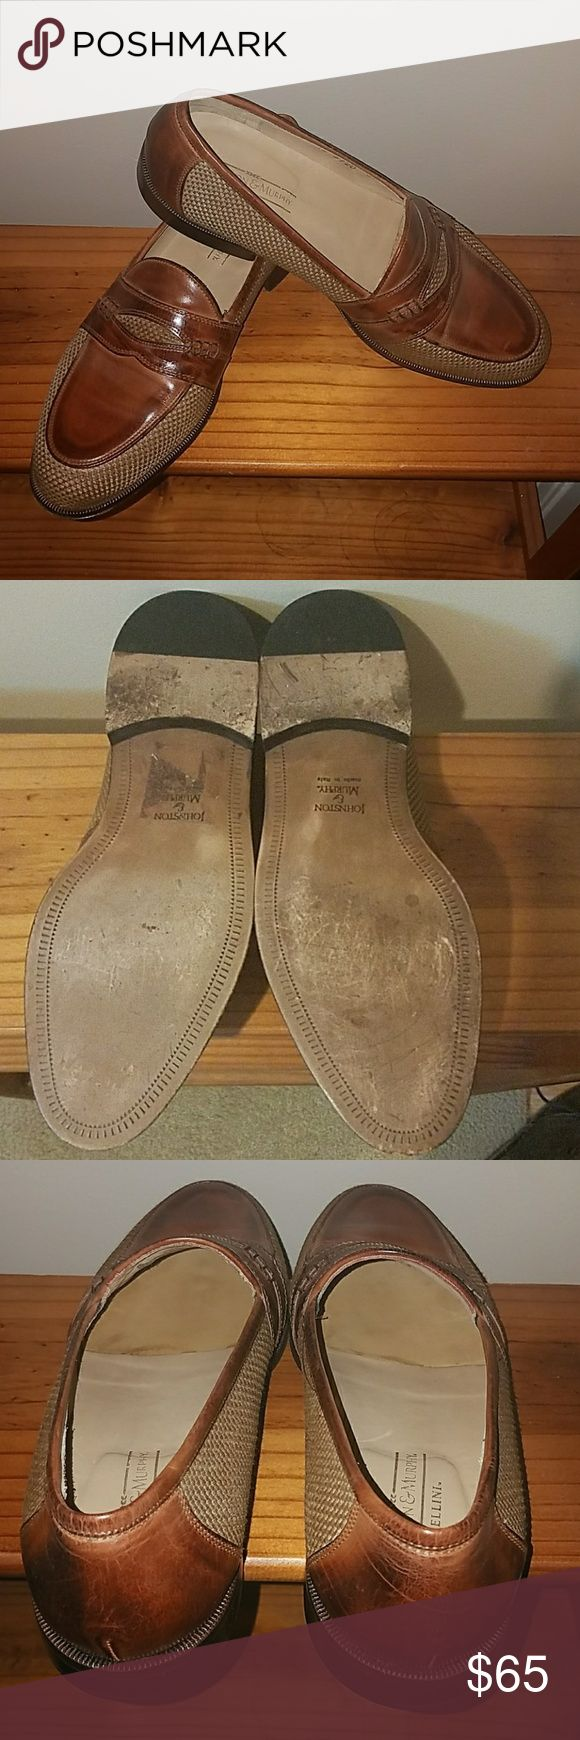 Johnson and Murphy loafer 9.5 Classy gently used ..brown leather and tanish/Brown tweed Johnston & Murphy Shoes Loafers & Slip-Ons